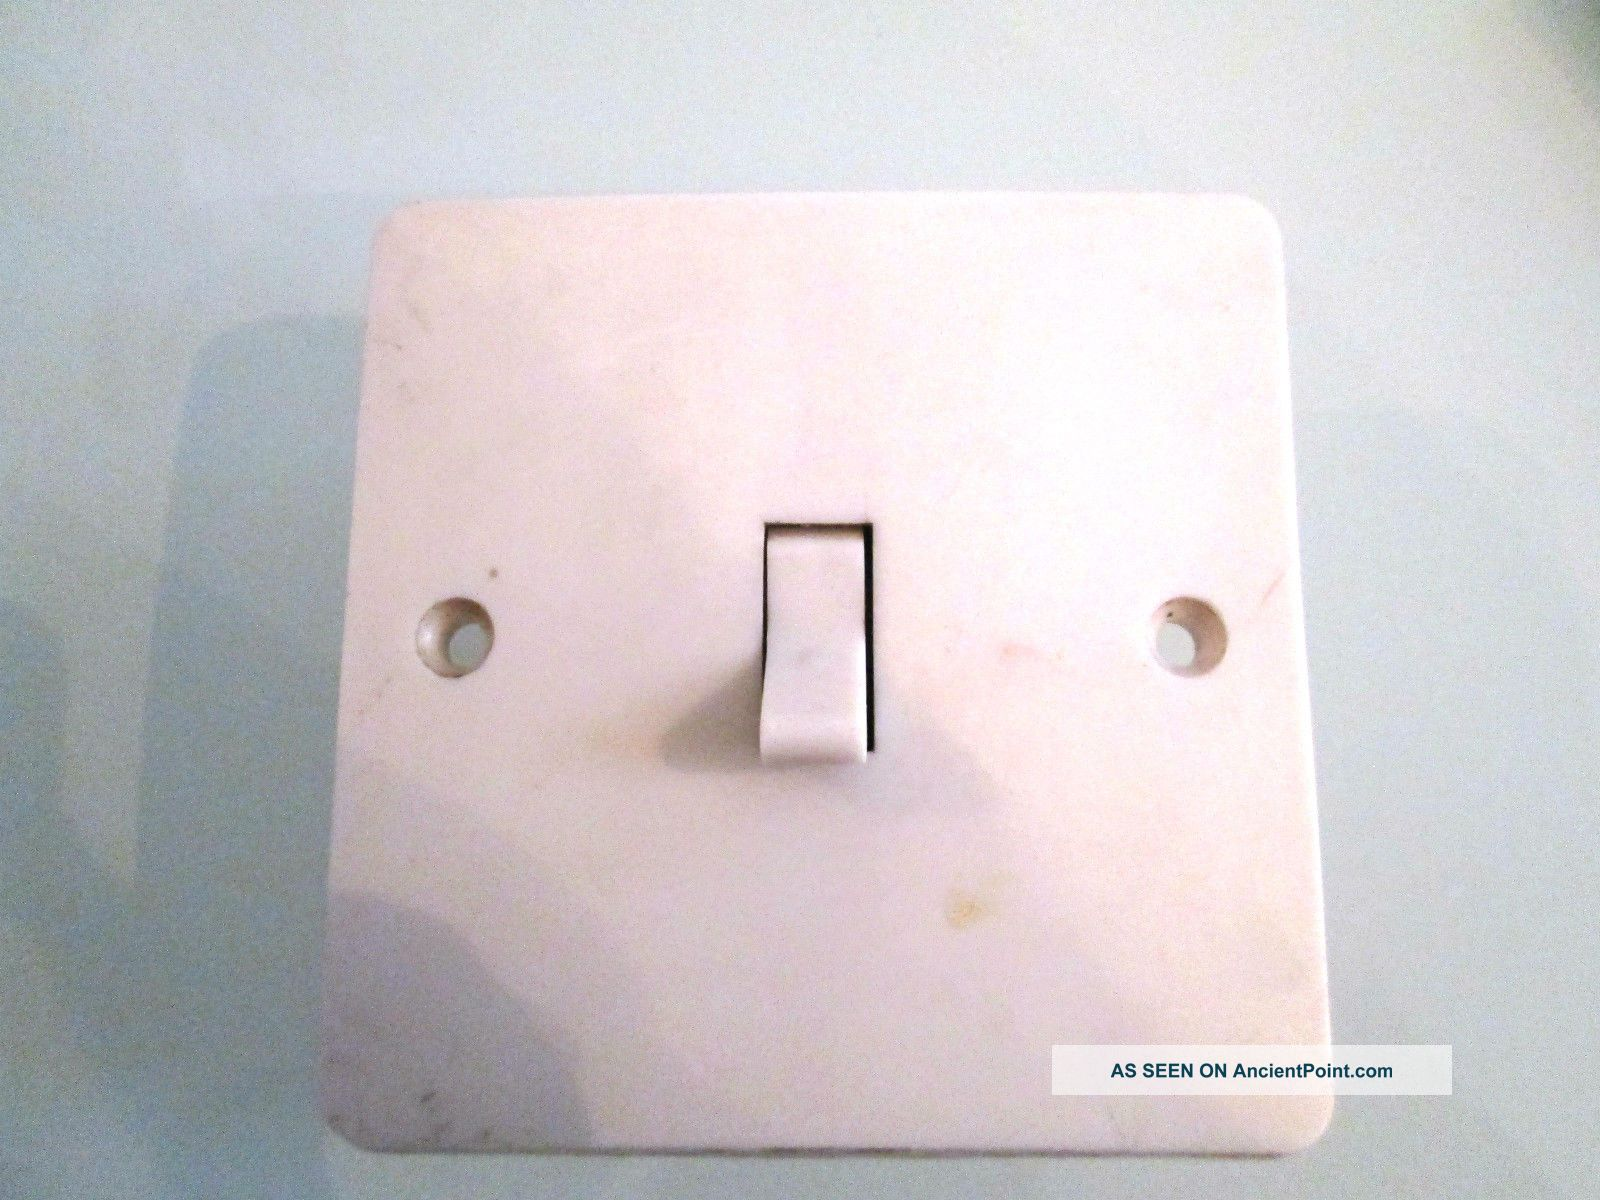 Vintage Light Switch 50s Light Switches photo